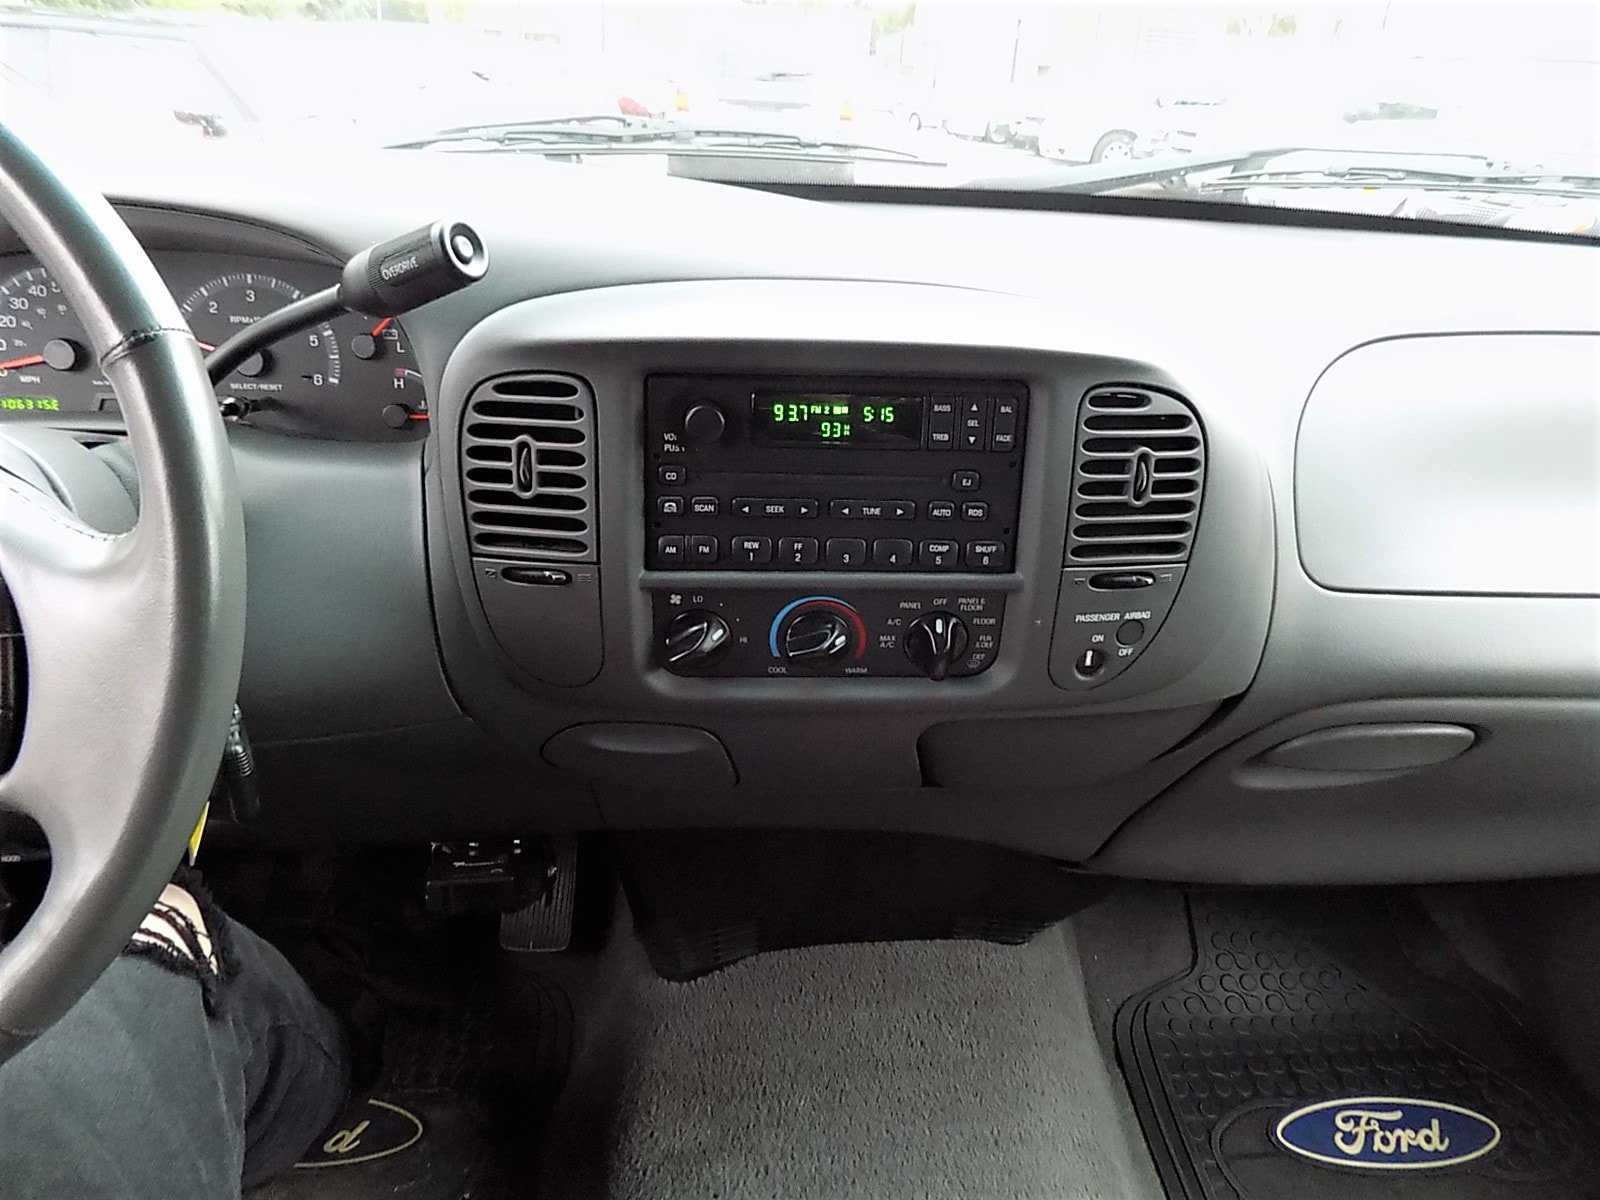 hight resolution of 2001 ford f150 xl supercab 6626